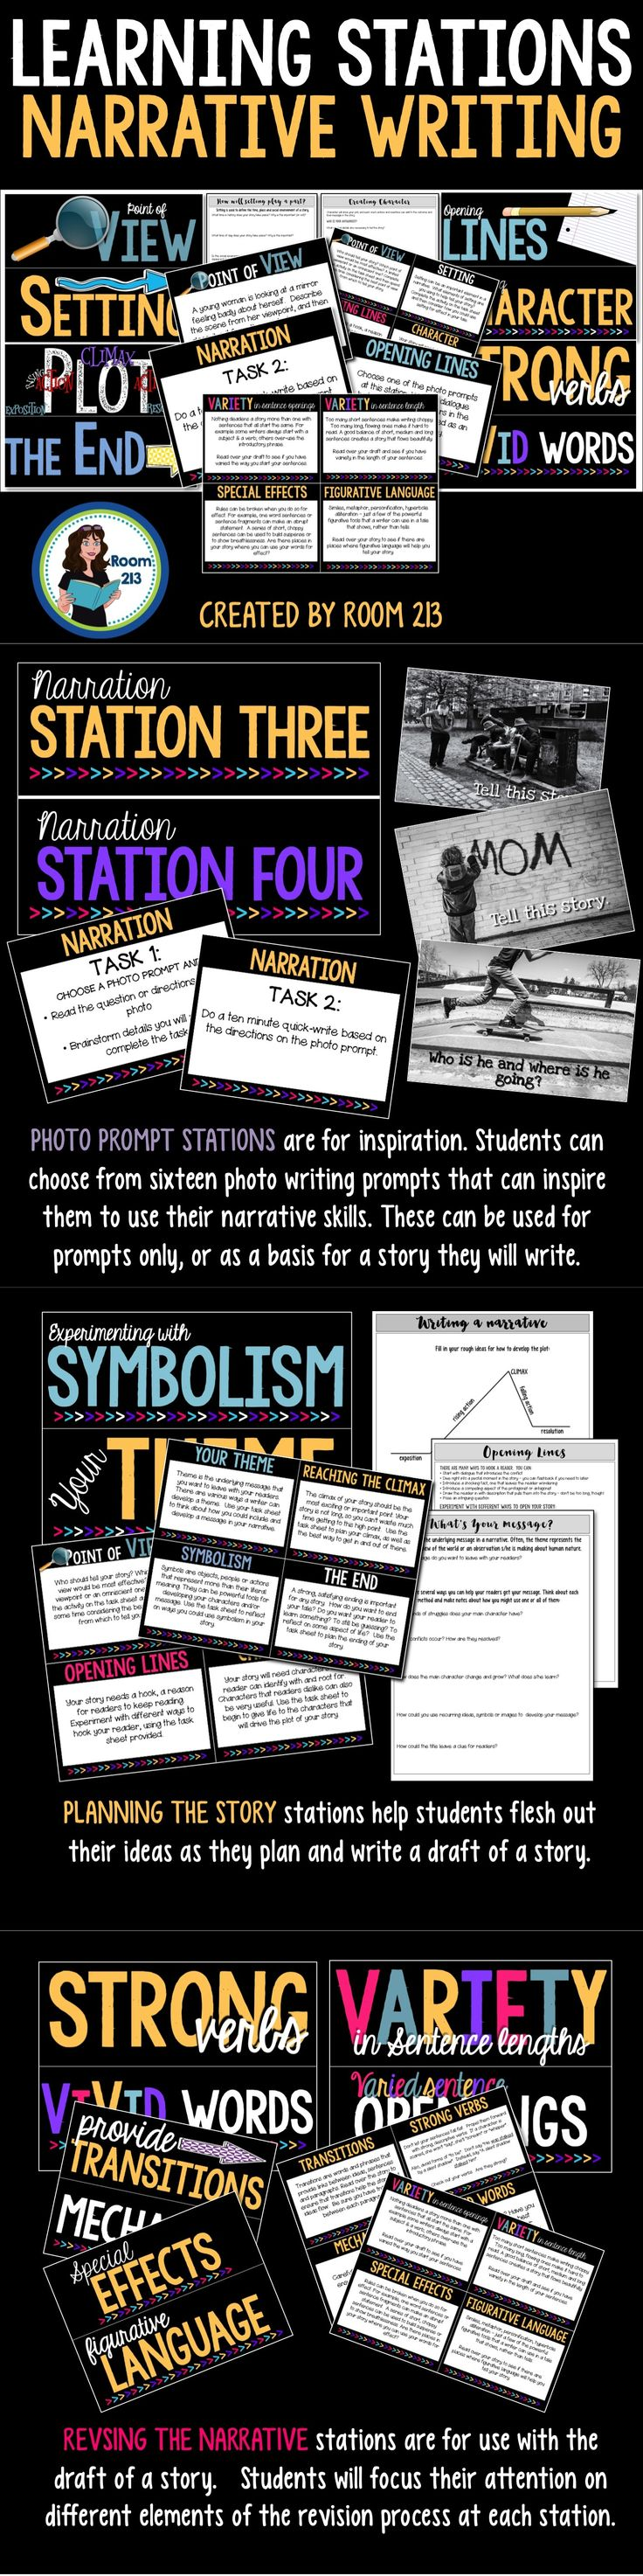 creative ideas for teaching narrative writing With this creative writing exercise for grades 7-12 developing a fictional narrative subjects lesson ideas, teaching tips and more.